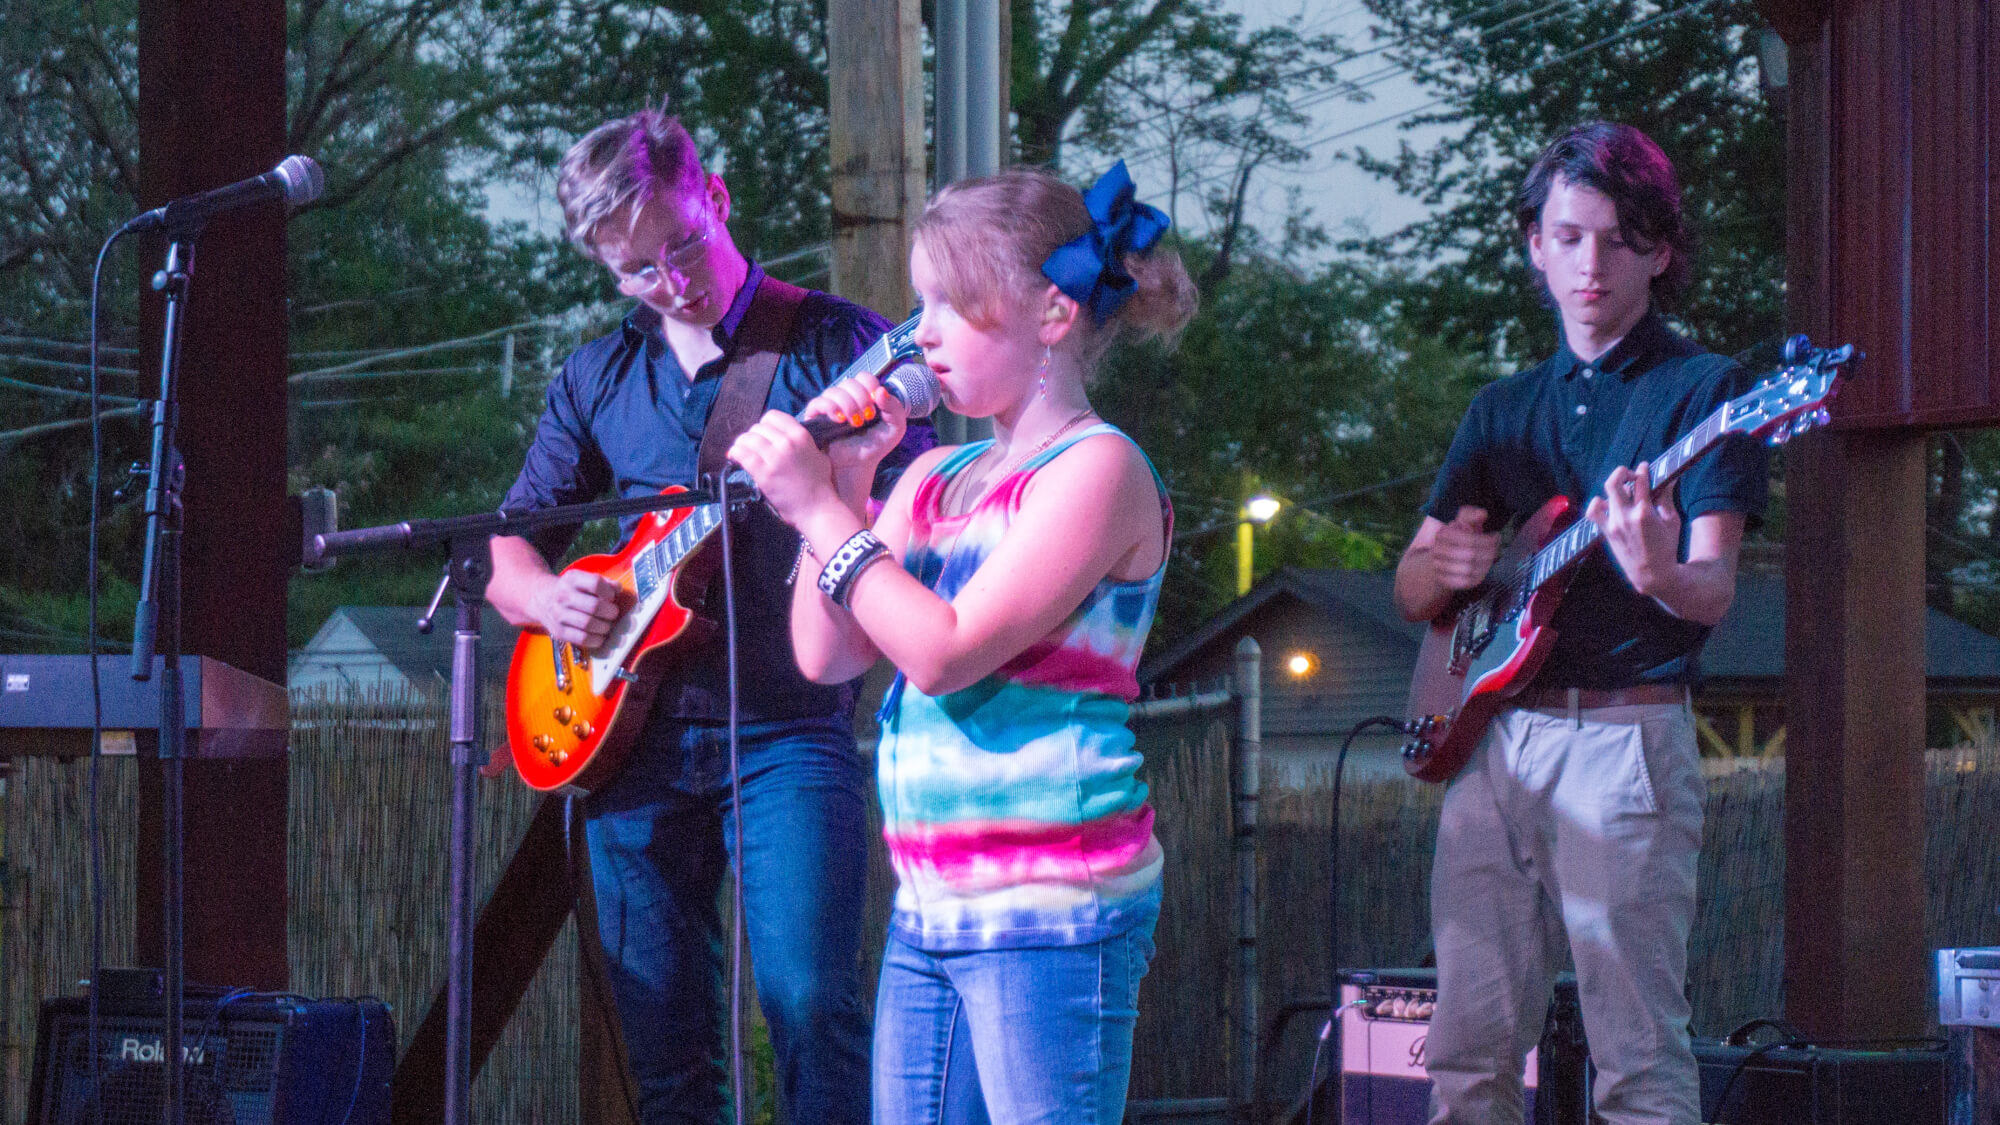 Spring 2018 Performance Music Festival at Atomic Cowboy Outdoor Stage.